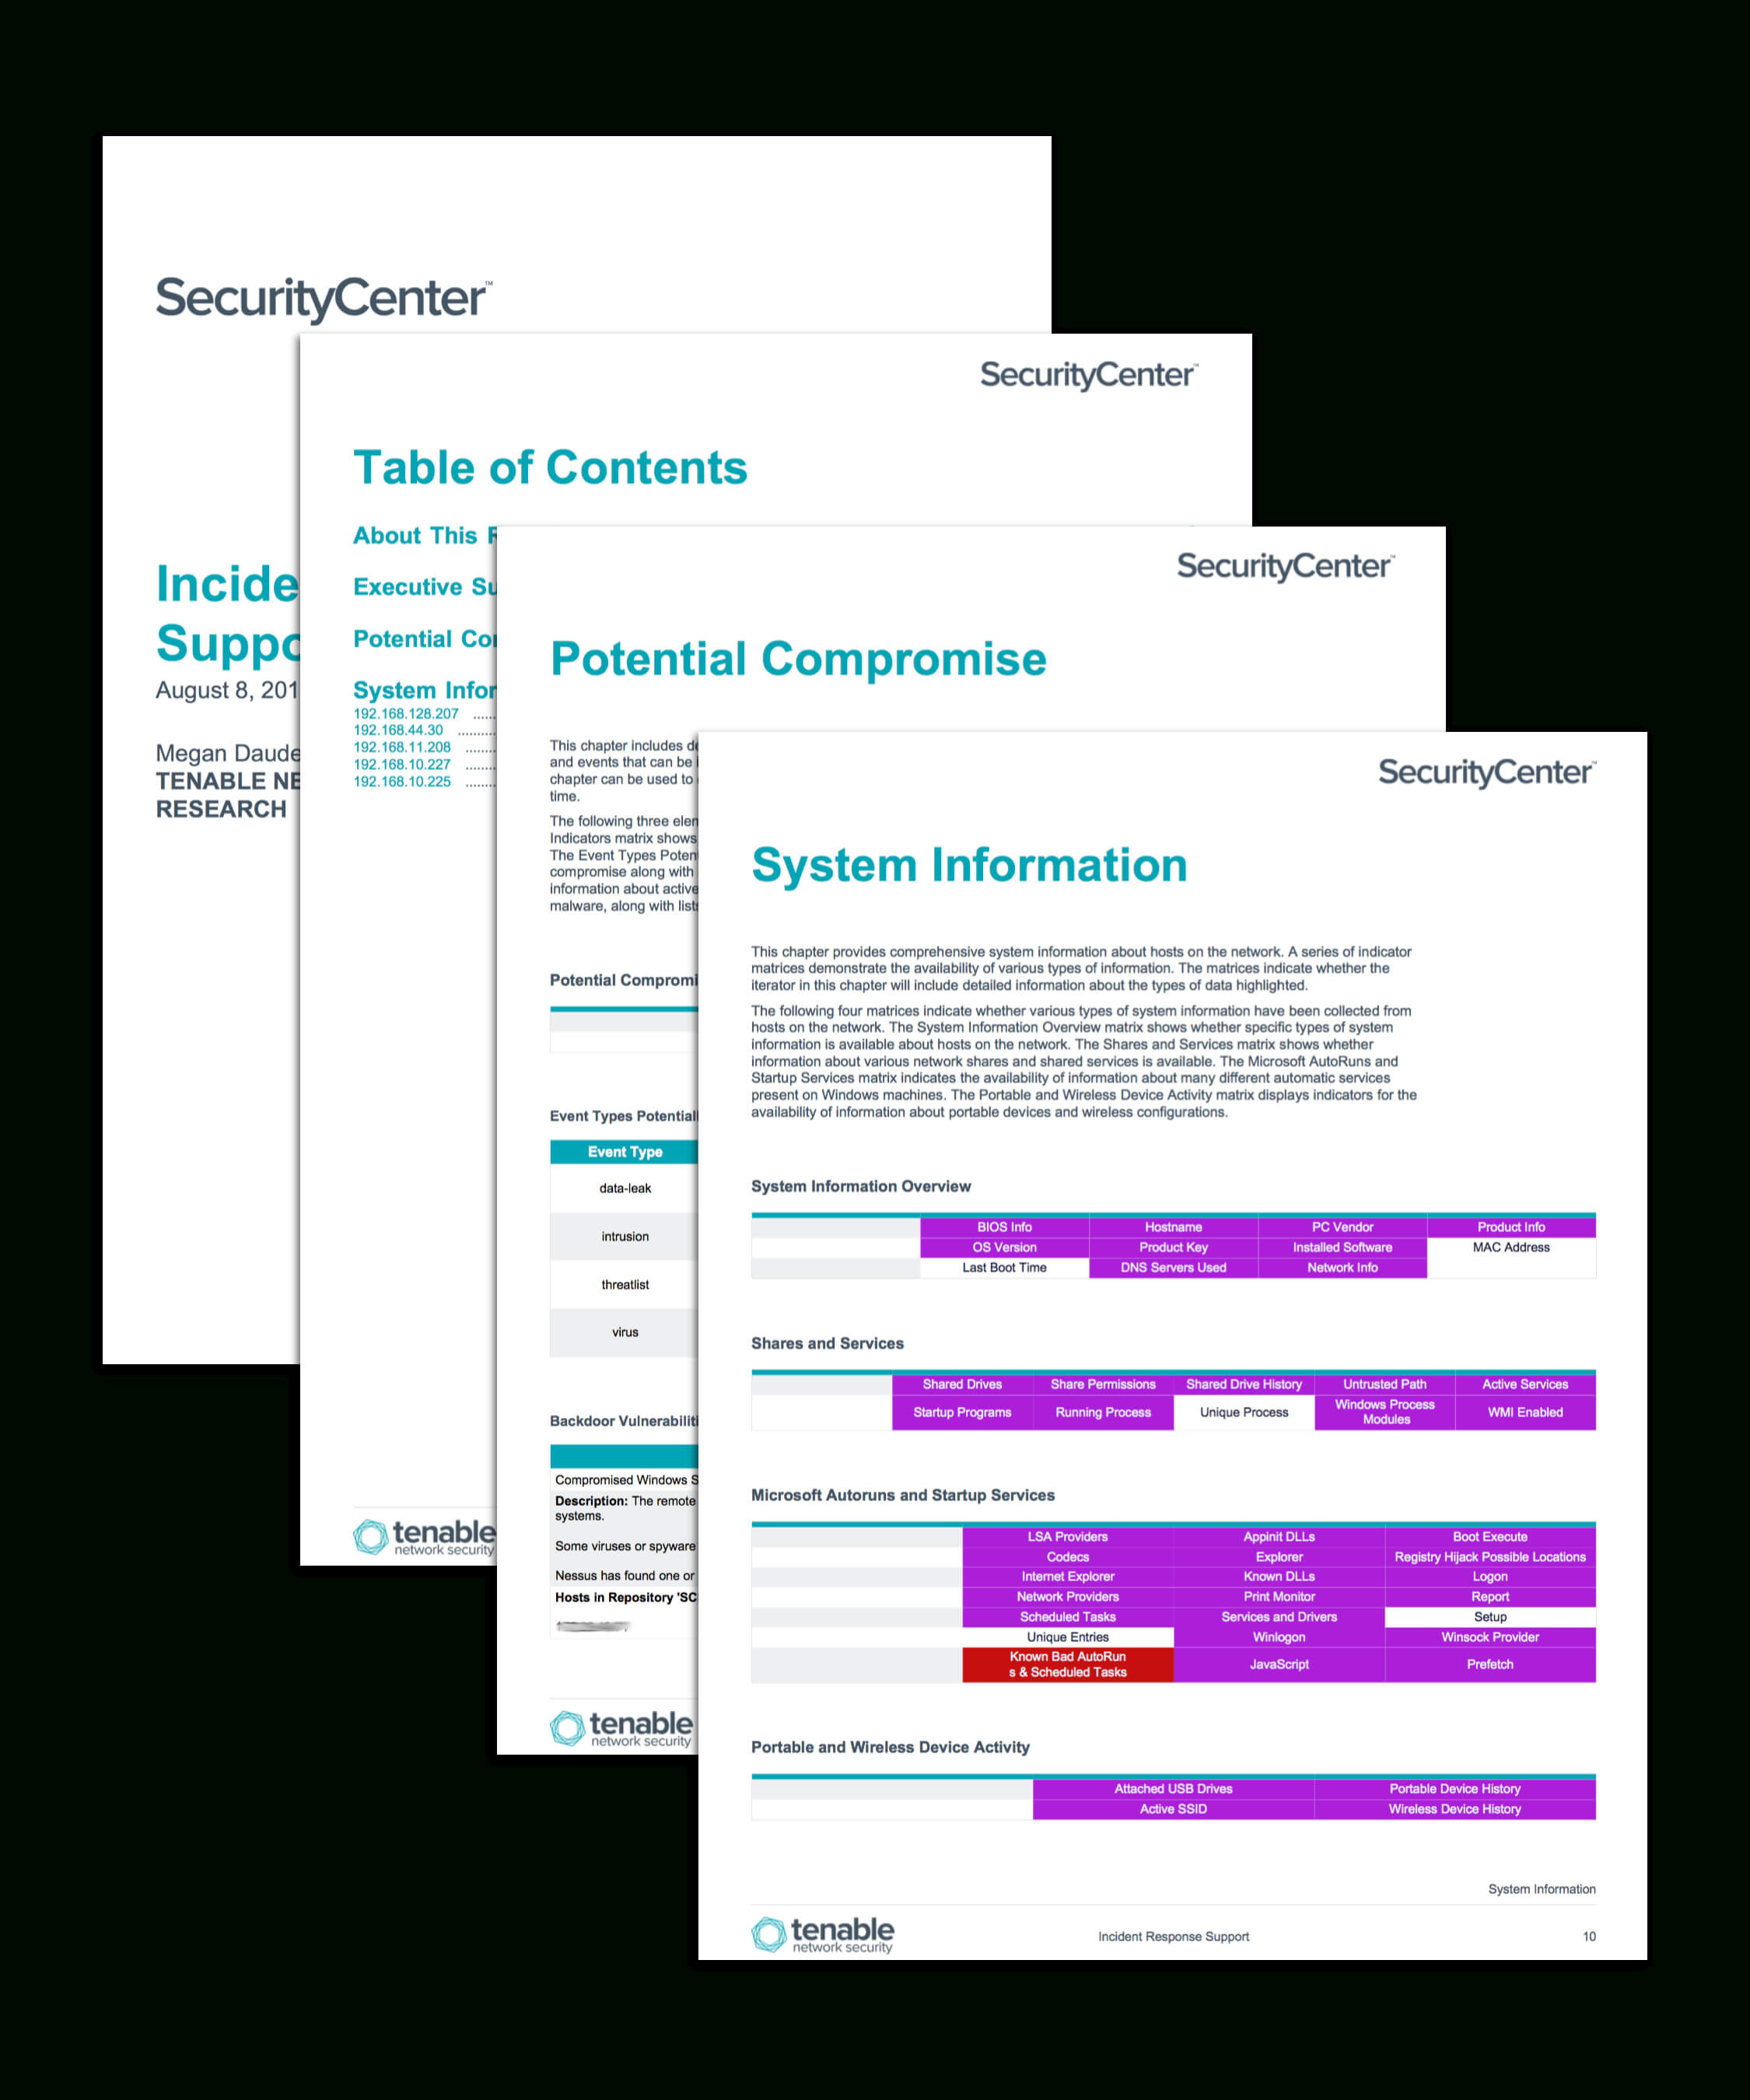 Incident Response Support - Sc Report Template | Tenable® Inside Technical Support Report Template